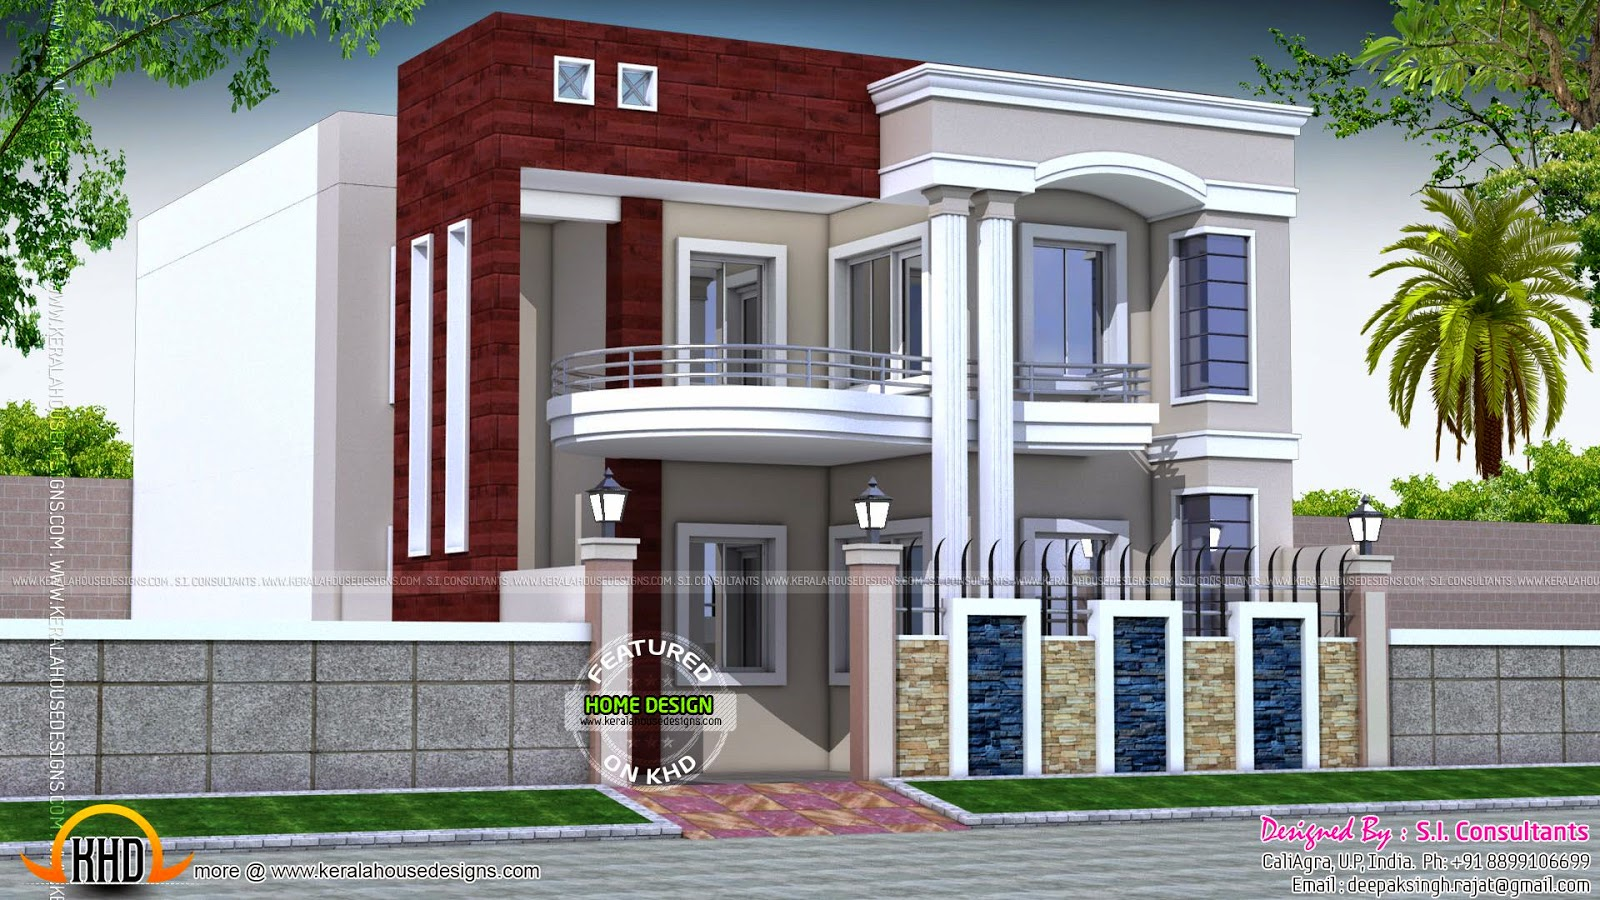 House design in north india kerala home design and floor for Best house designs indian style